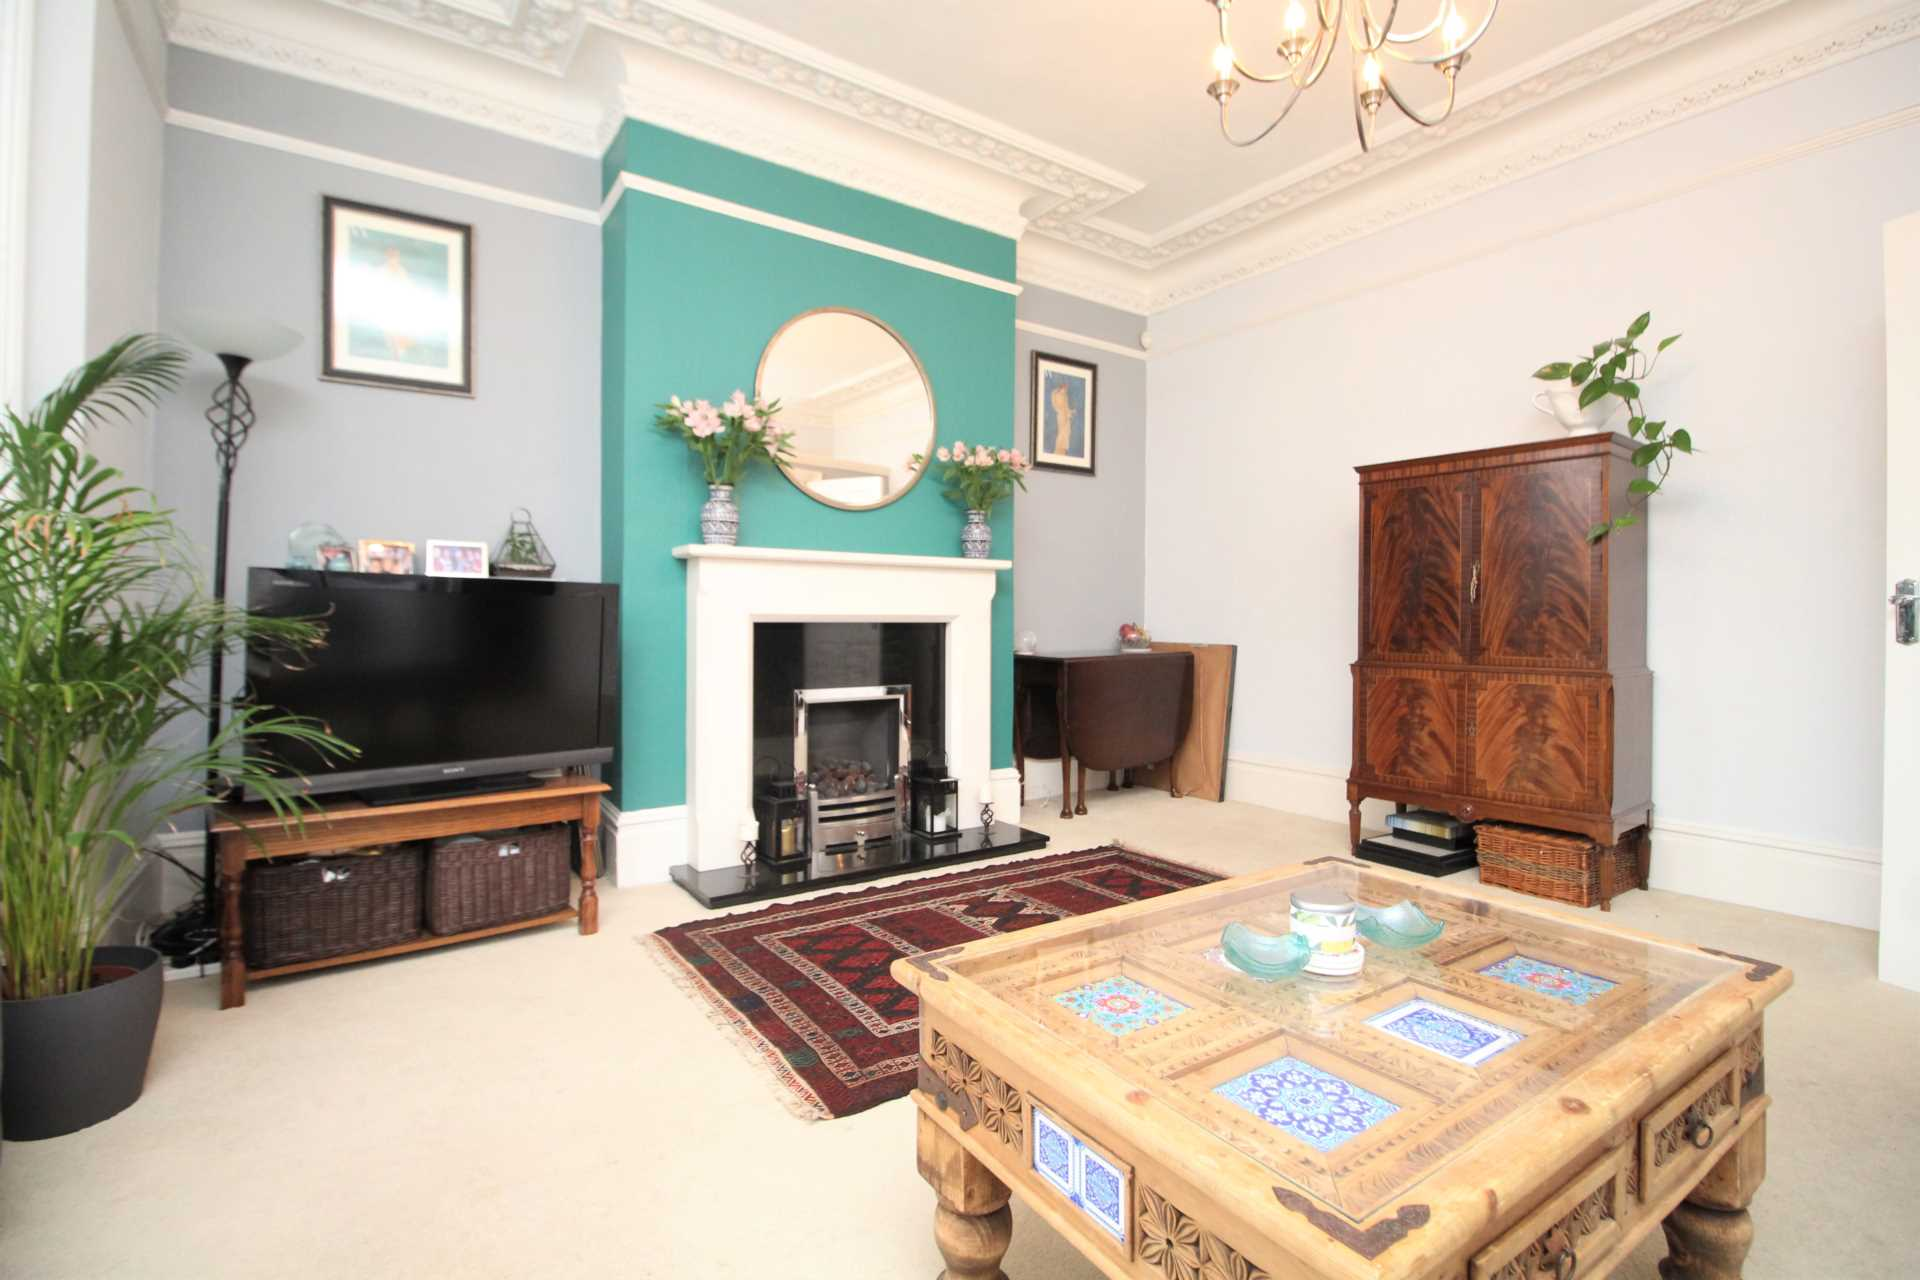 Warley Mount, Brentwood, Image 6